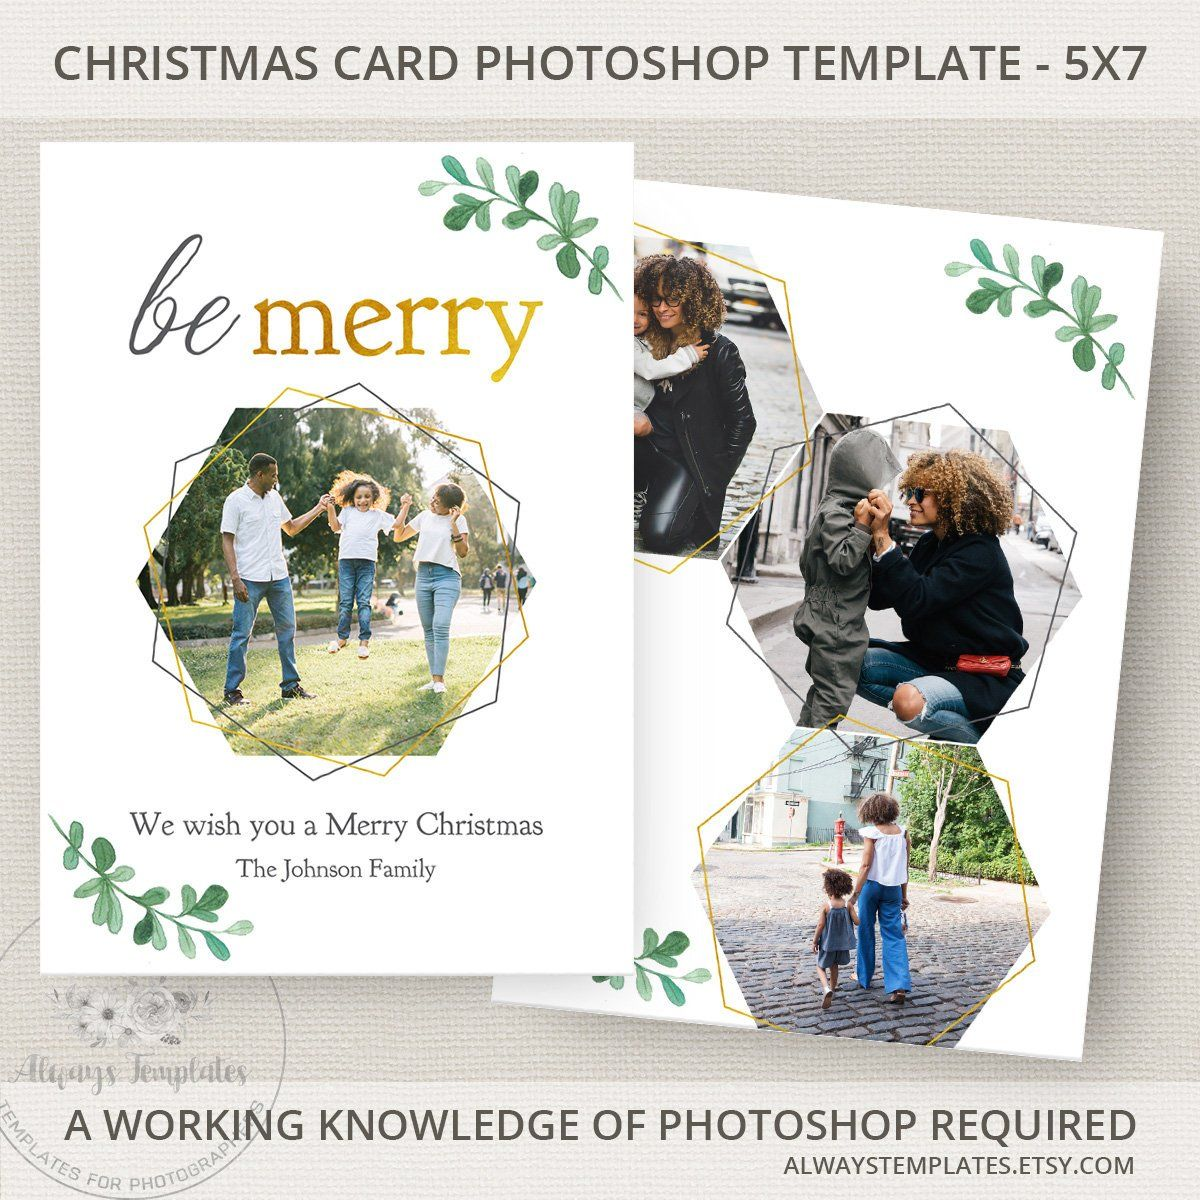 Photo Christmas Card Template Photoshop Holiday PSD 5x7 By AlwaysTemplates